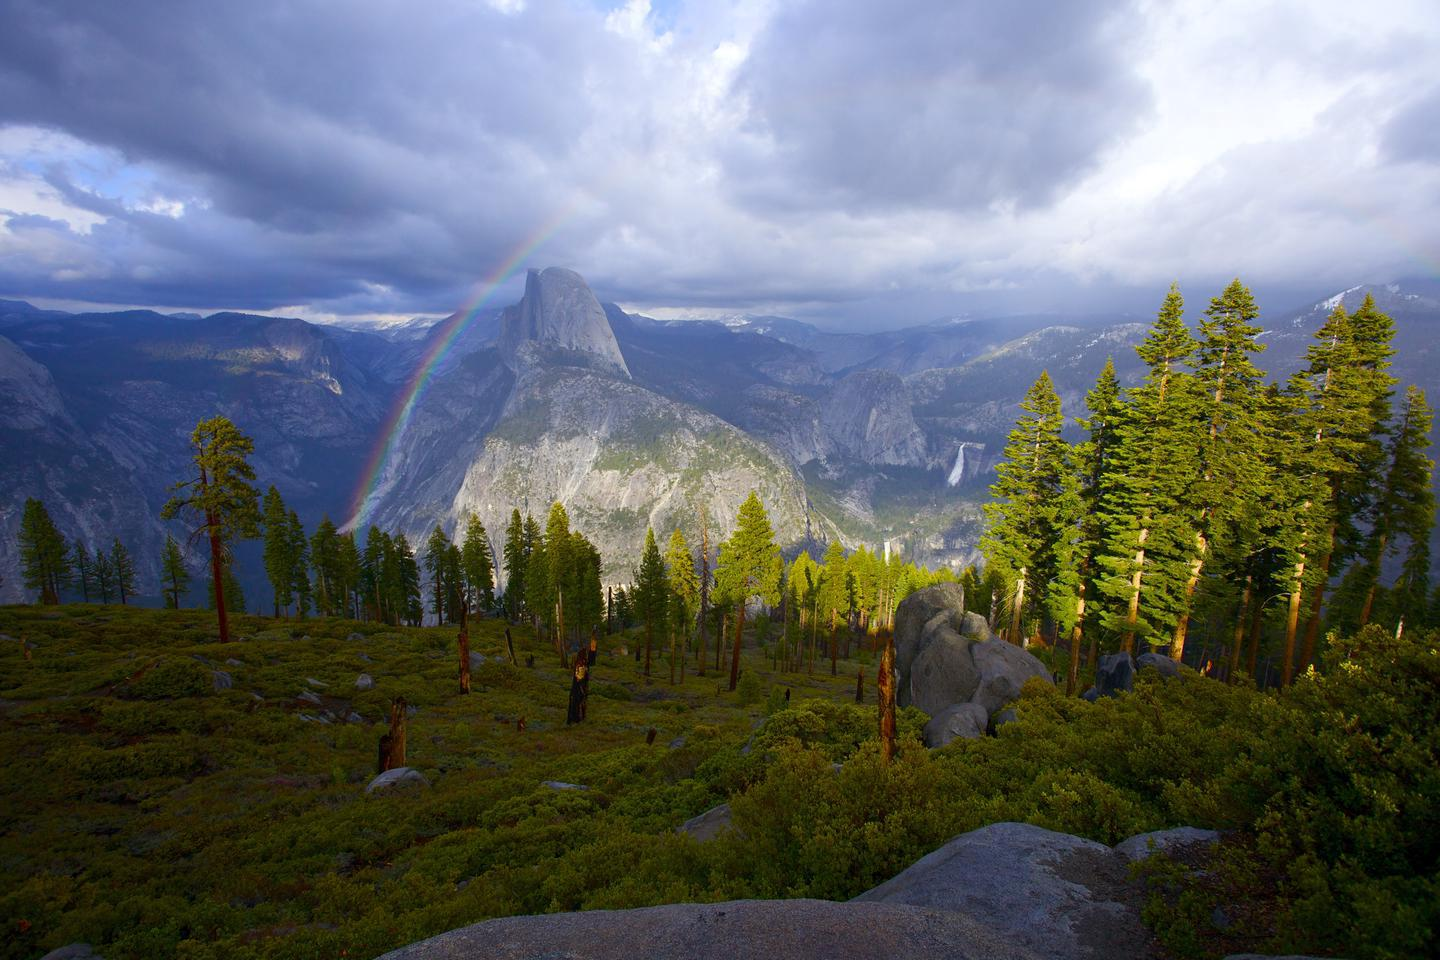 Rainbow over Half DomeA hike up to Sentinel Dome rewards people with great views of the landscape around them.